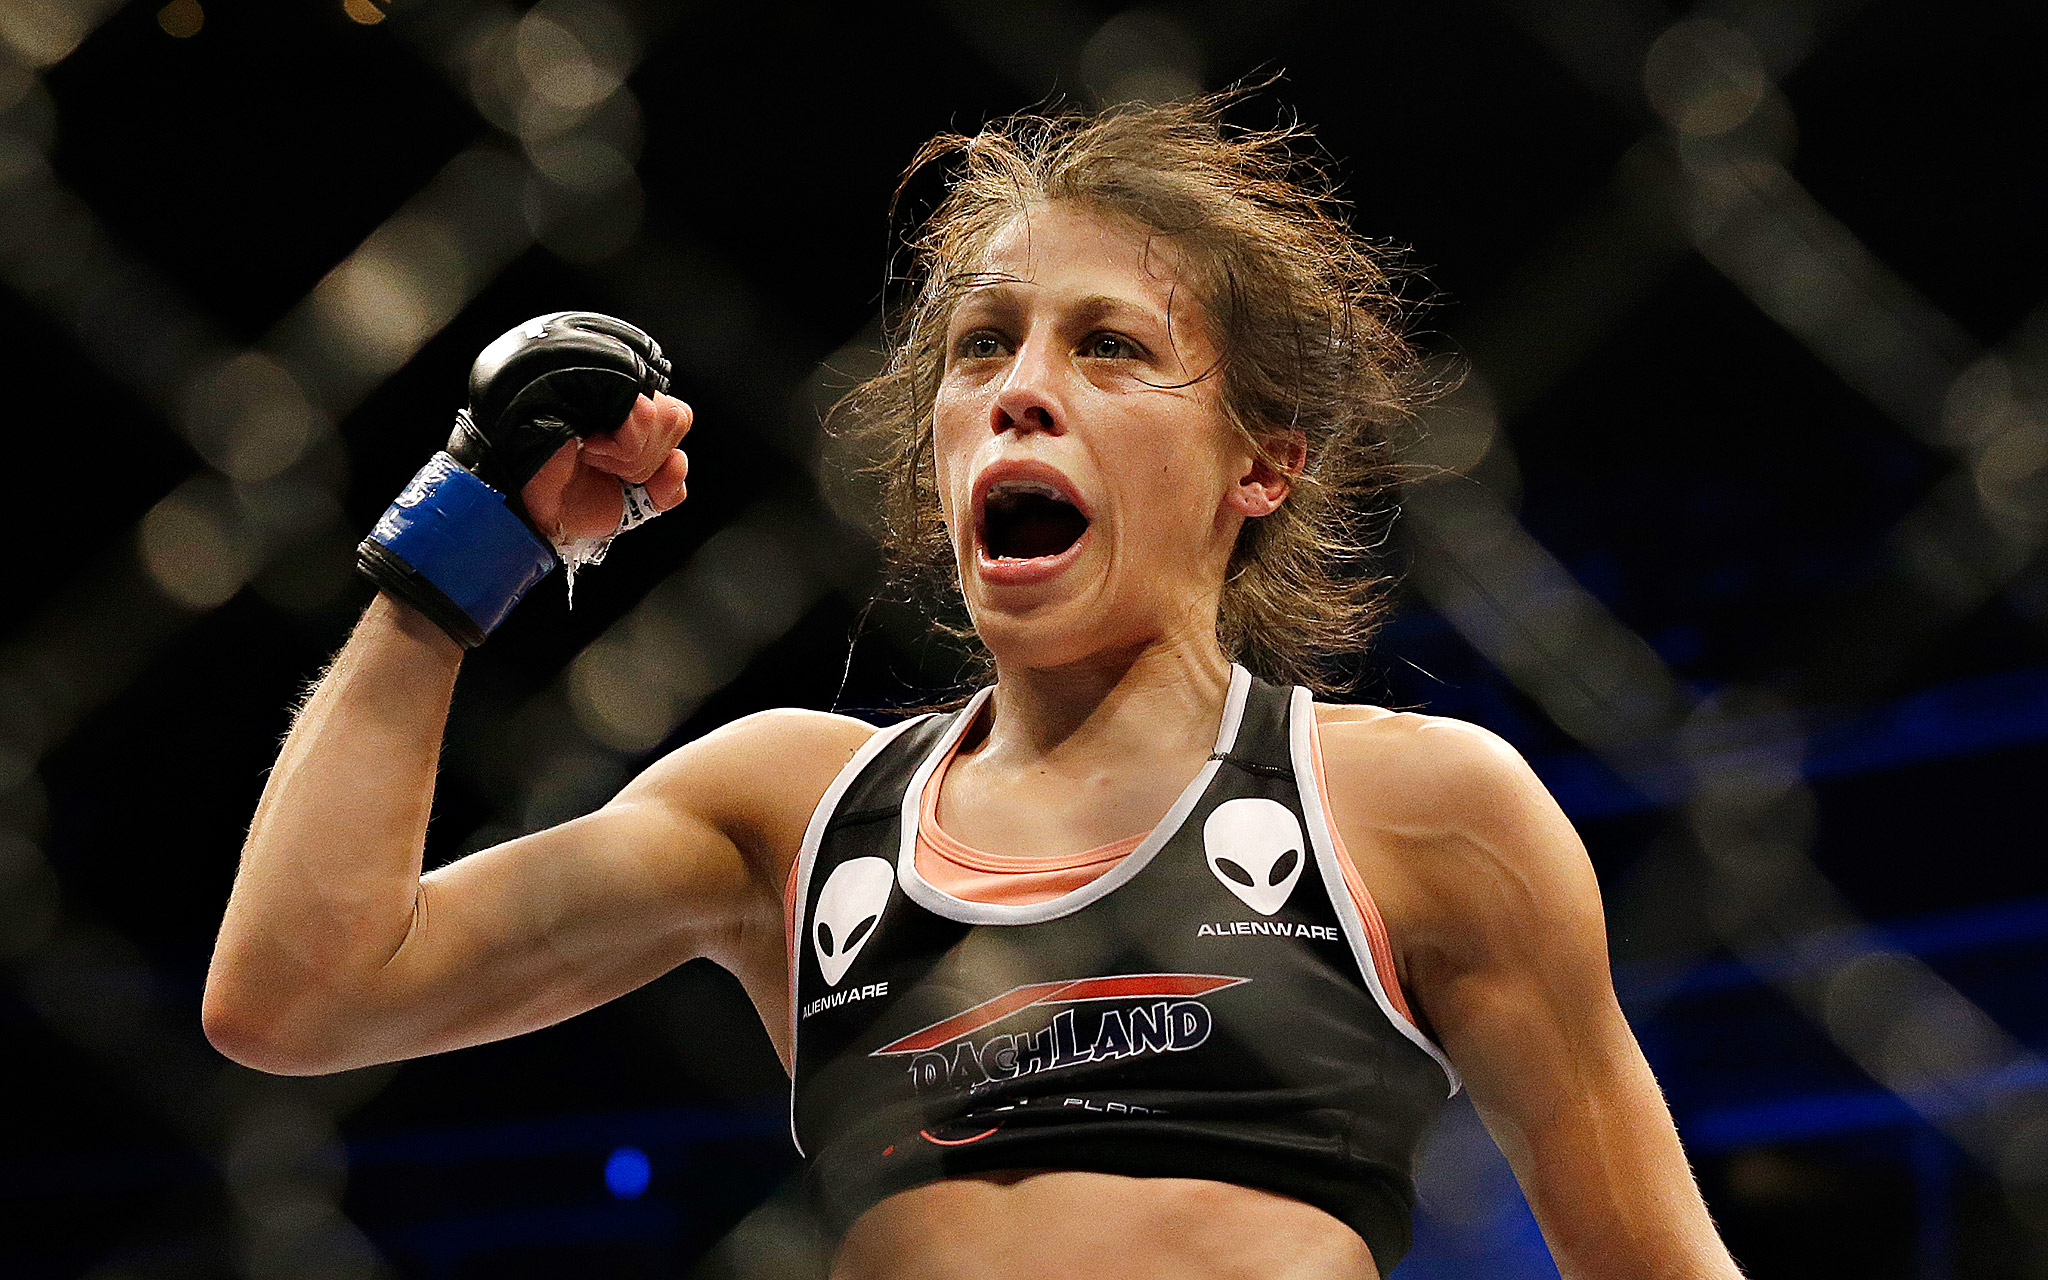 Joanna Jedrzejczyk celebrates after beating Juliana Lima by unanimous decision in a women's strawweight mixed martial arts bout at a UFC on Fox event in San Jose, California.